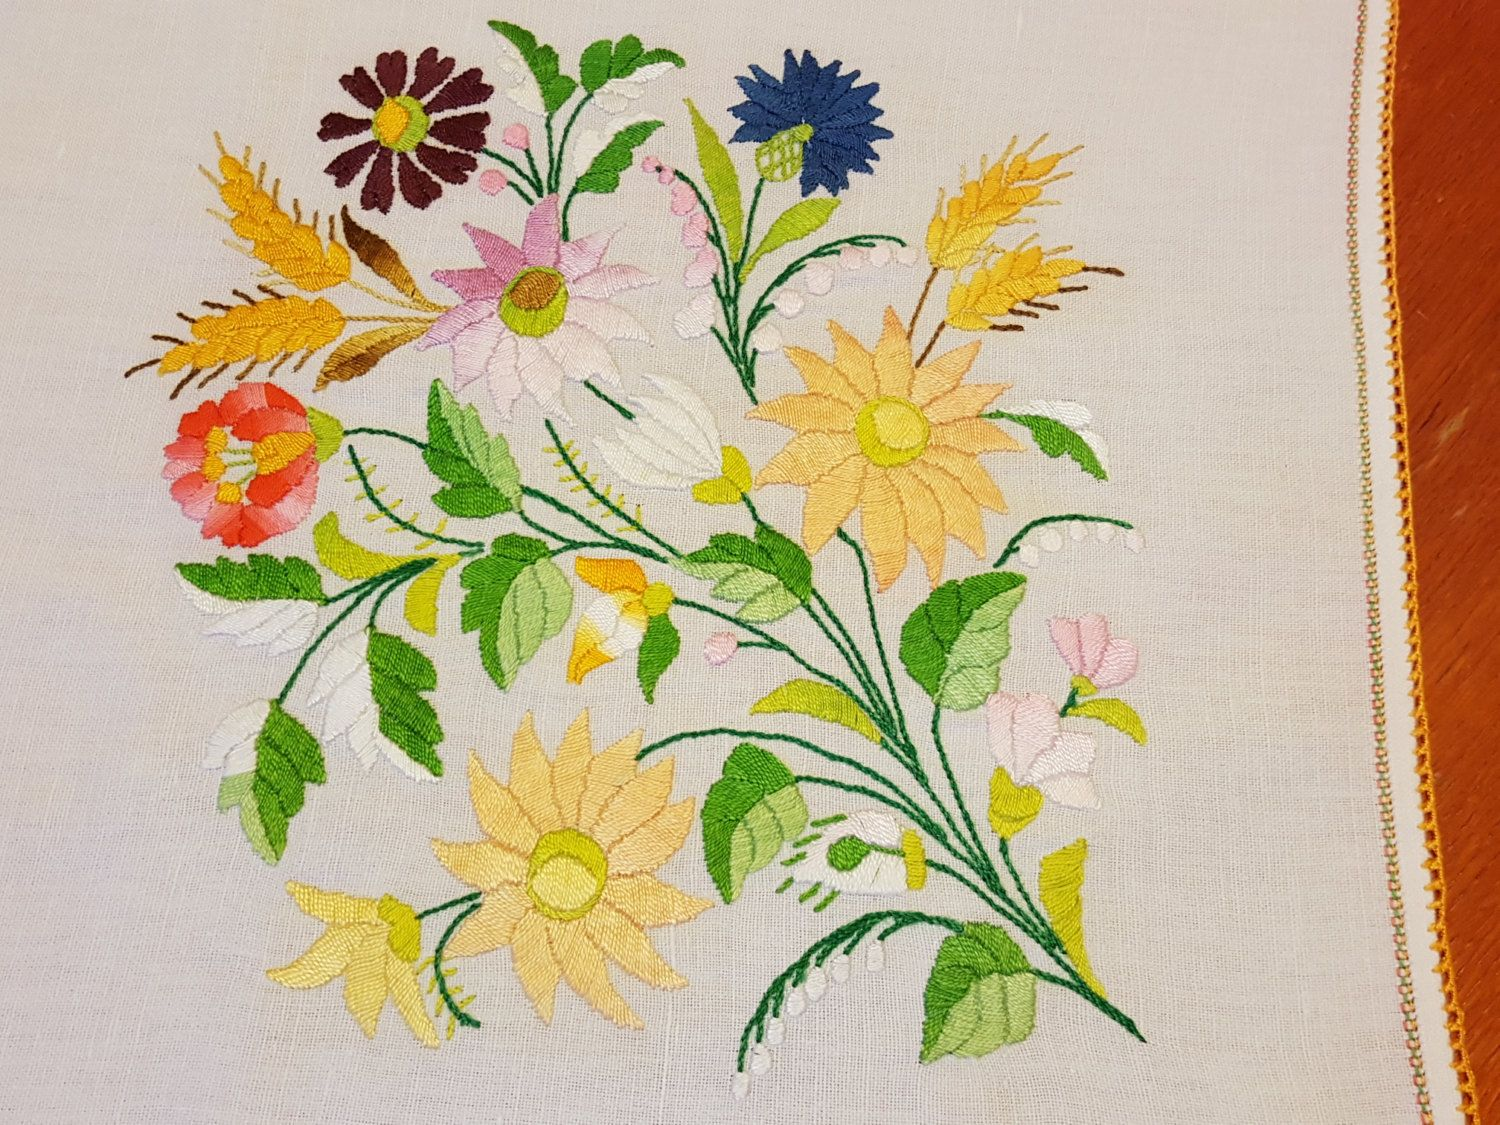 Wheat Patterned Tablecloth Wheat Floral Colorful Tablecloth Vintage Handmade Hungarian Embroidered Tablecloth With Kalocsai Flowers By Treasu With Images Mintak Kalocsai